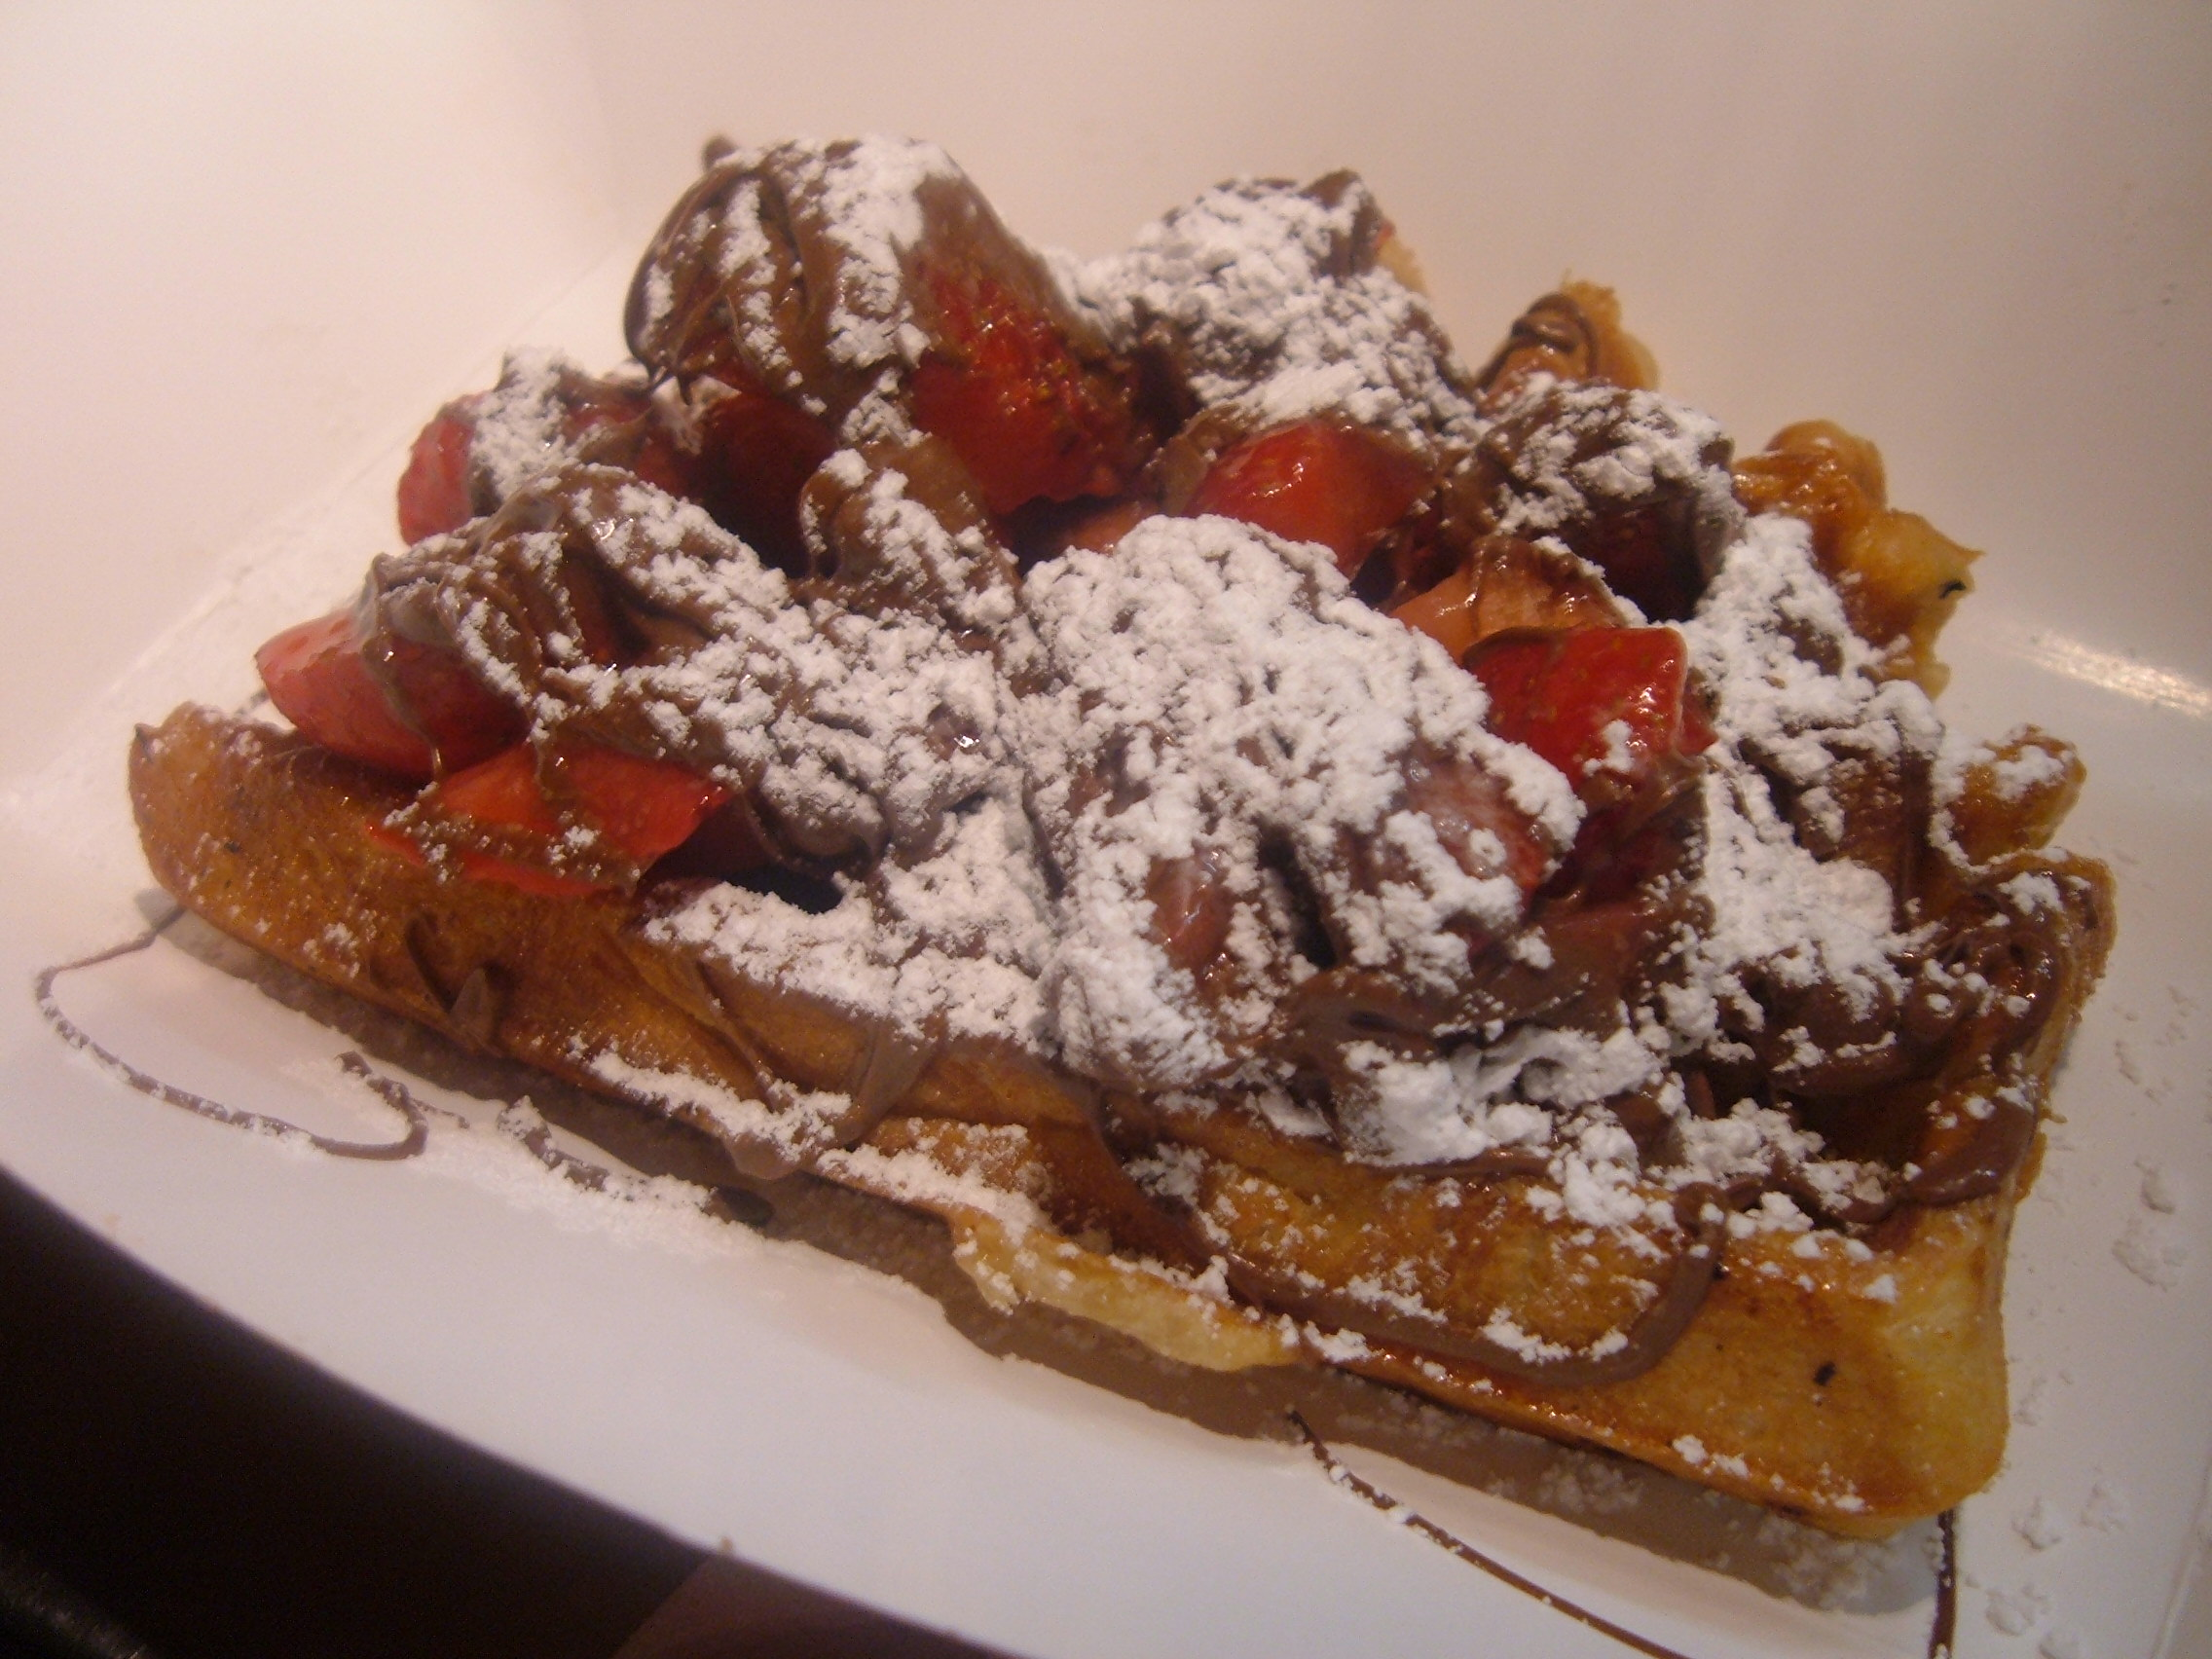 Wafels Amp Dinges Truck Cinnamon Liege Wafel Is Better Than